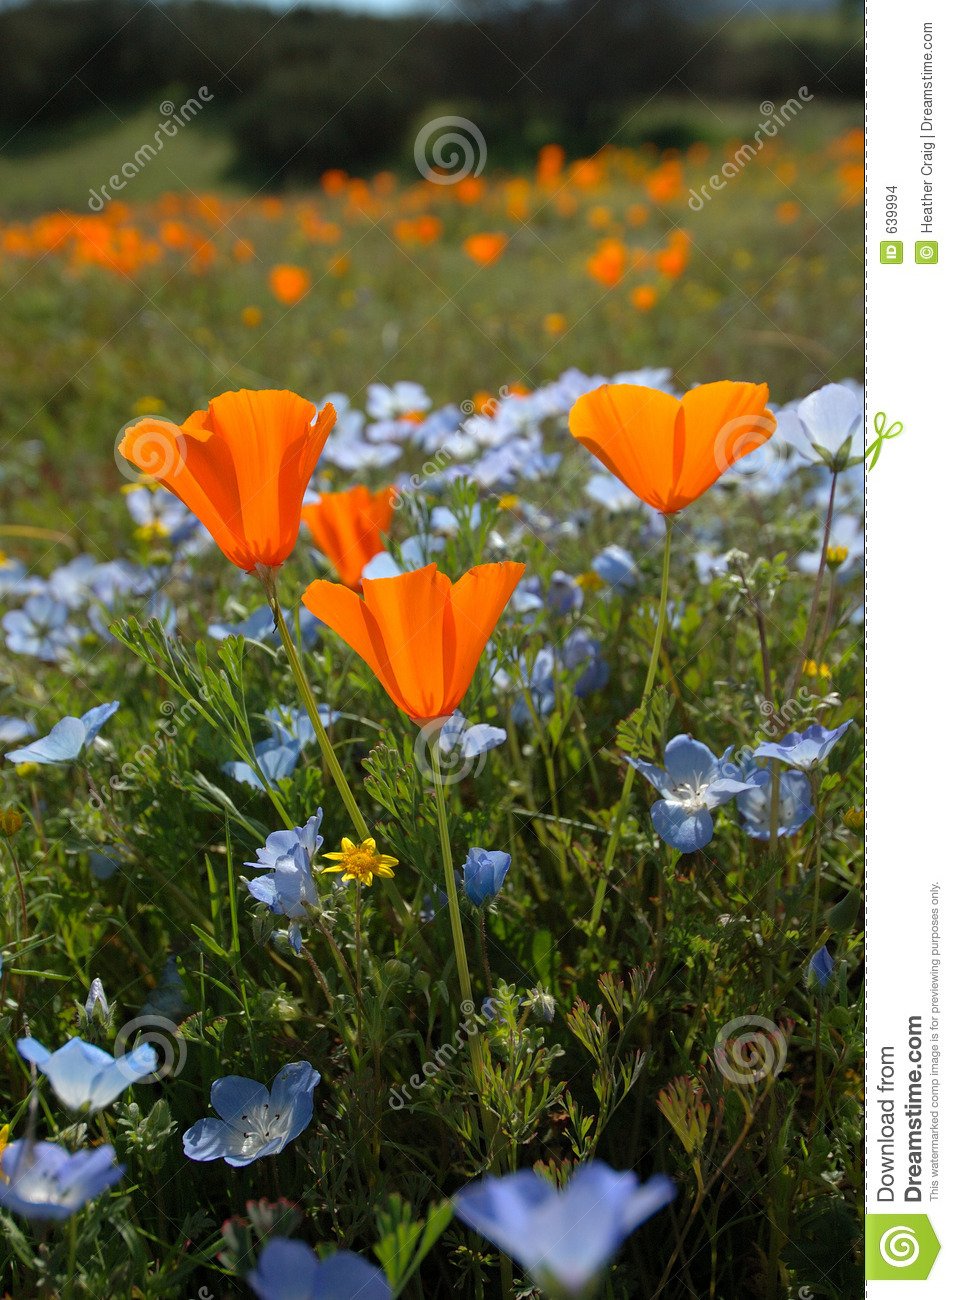 Bug s Eye View Vertical: California Poppy, Baby Blue Eyes, and Goldfields